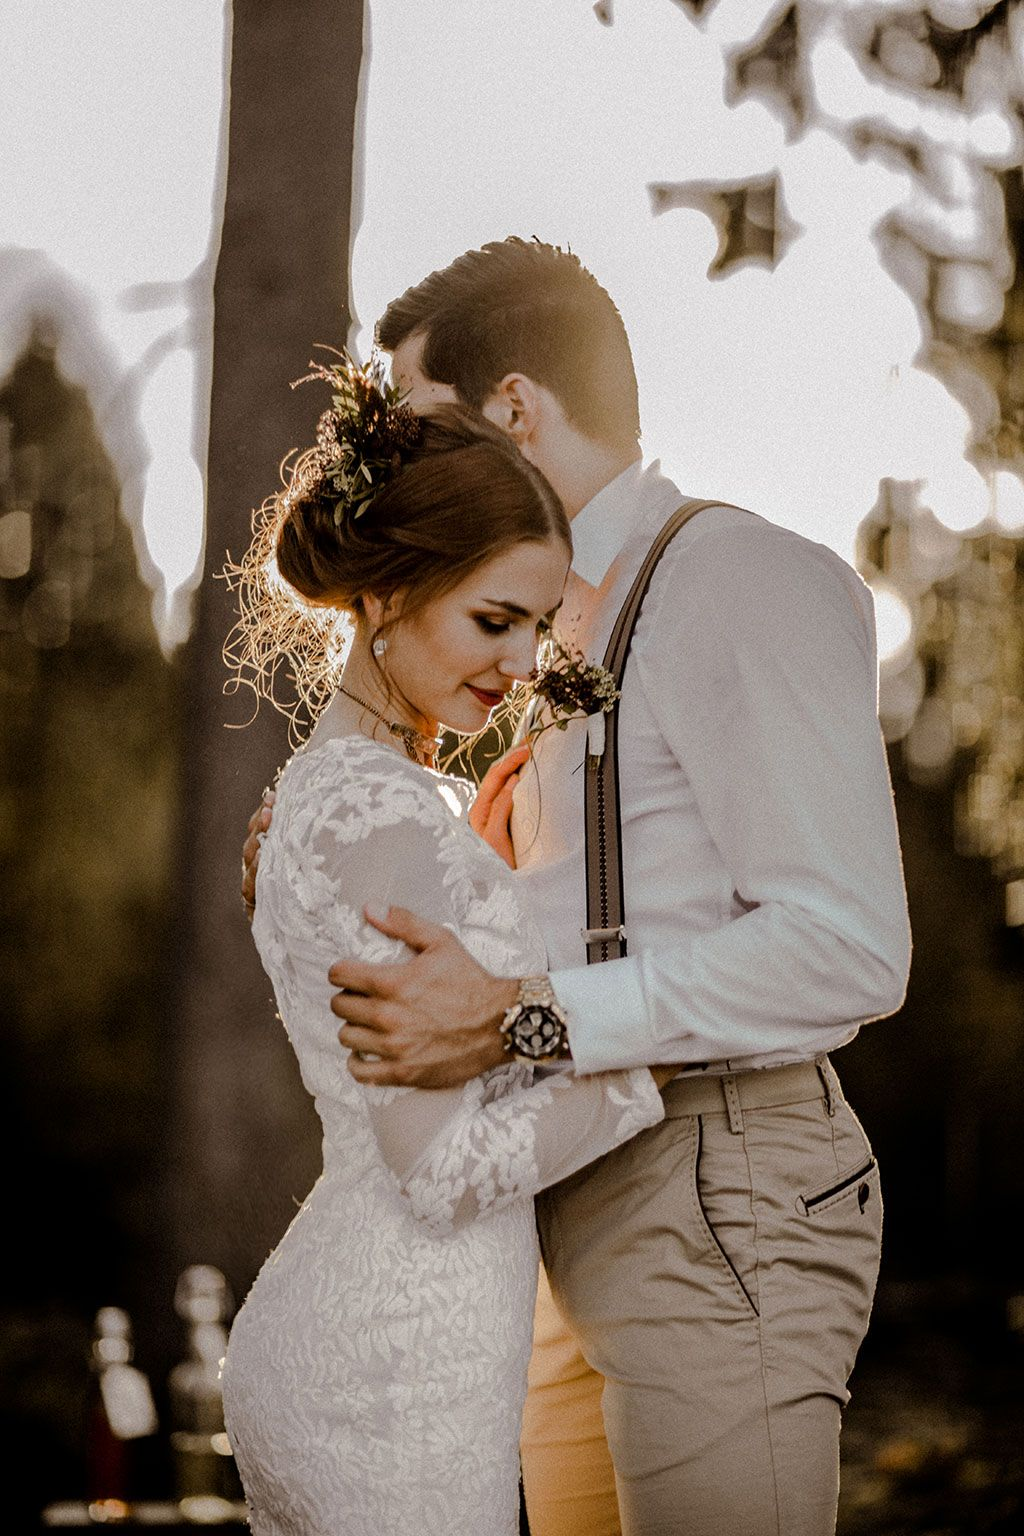 Wedding in the woods | Elena Engels Fotografie | elena engels / my ...